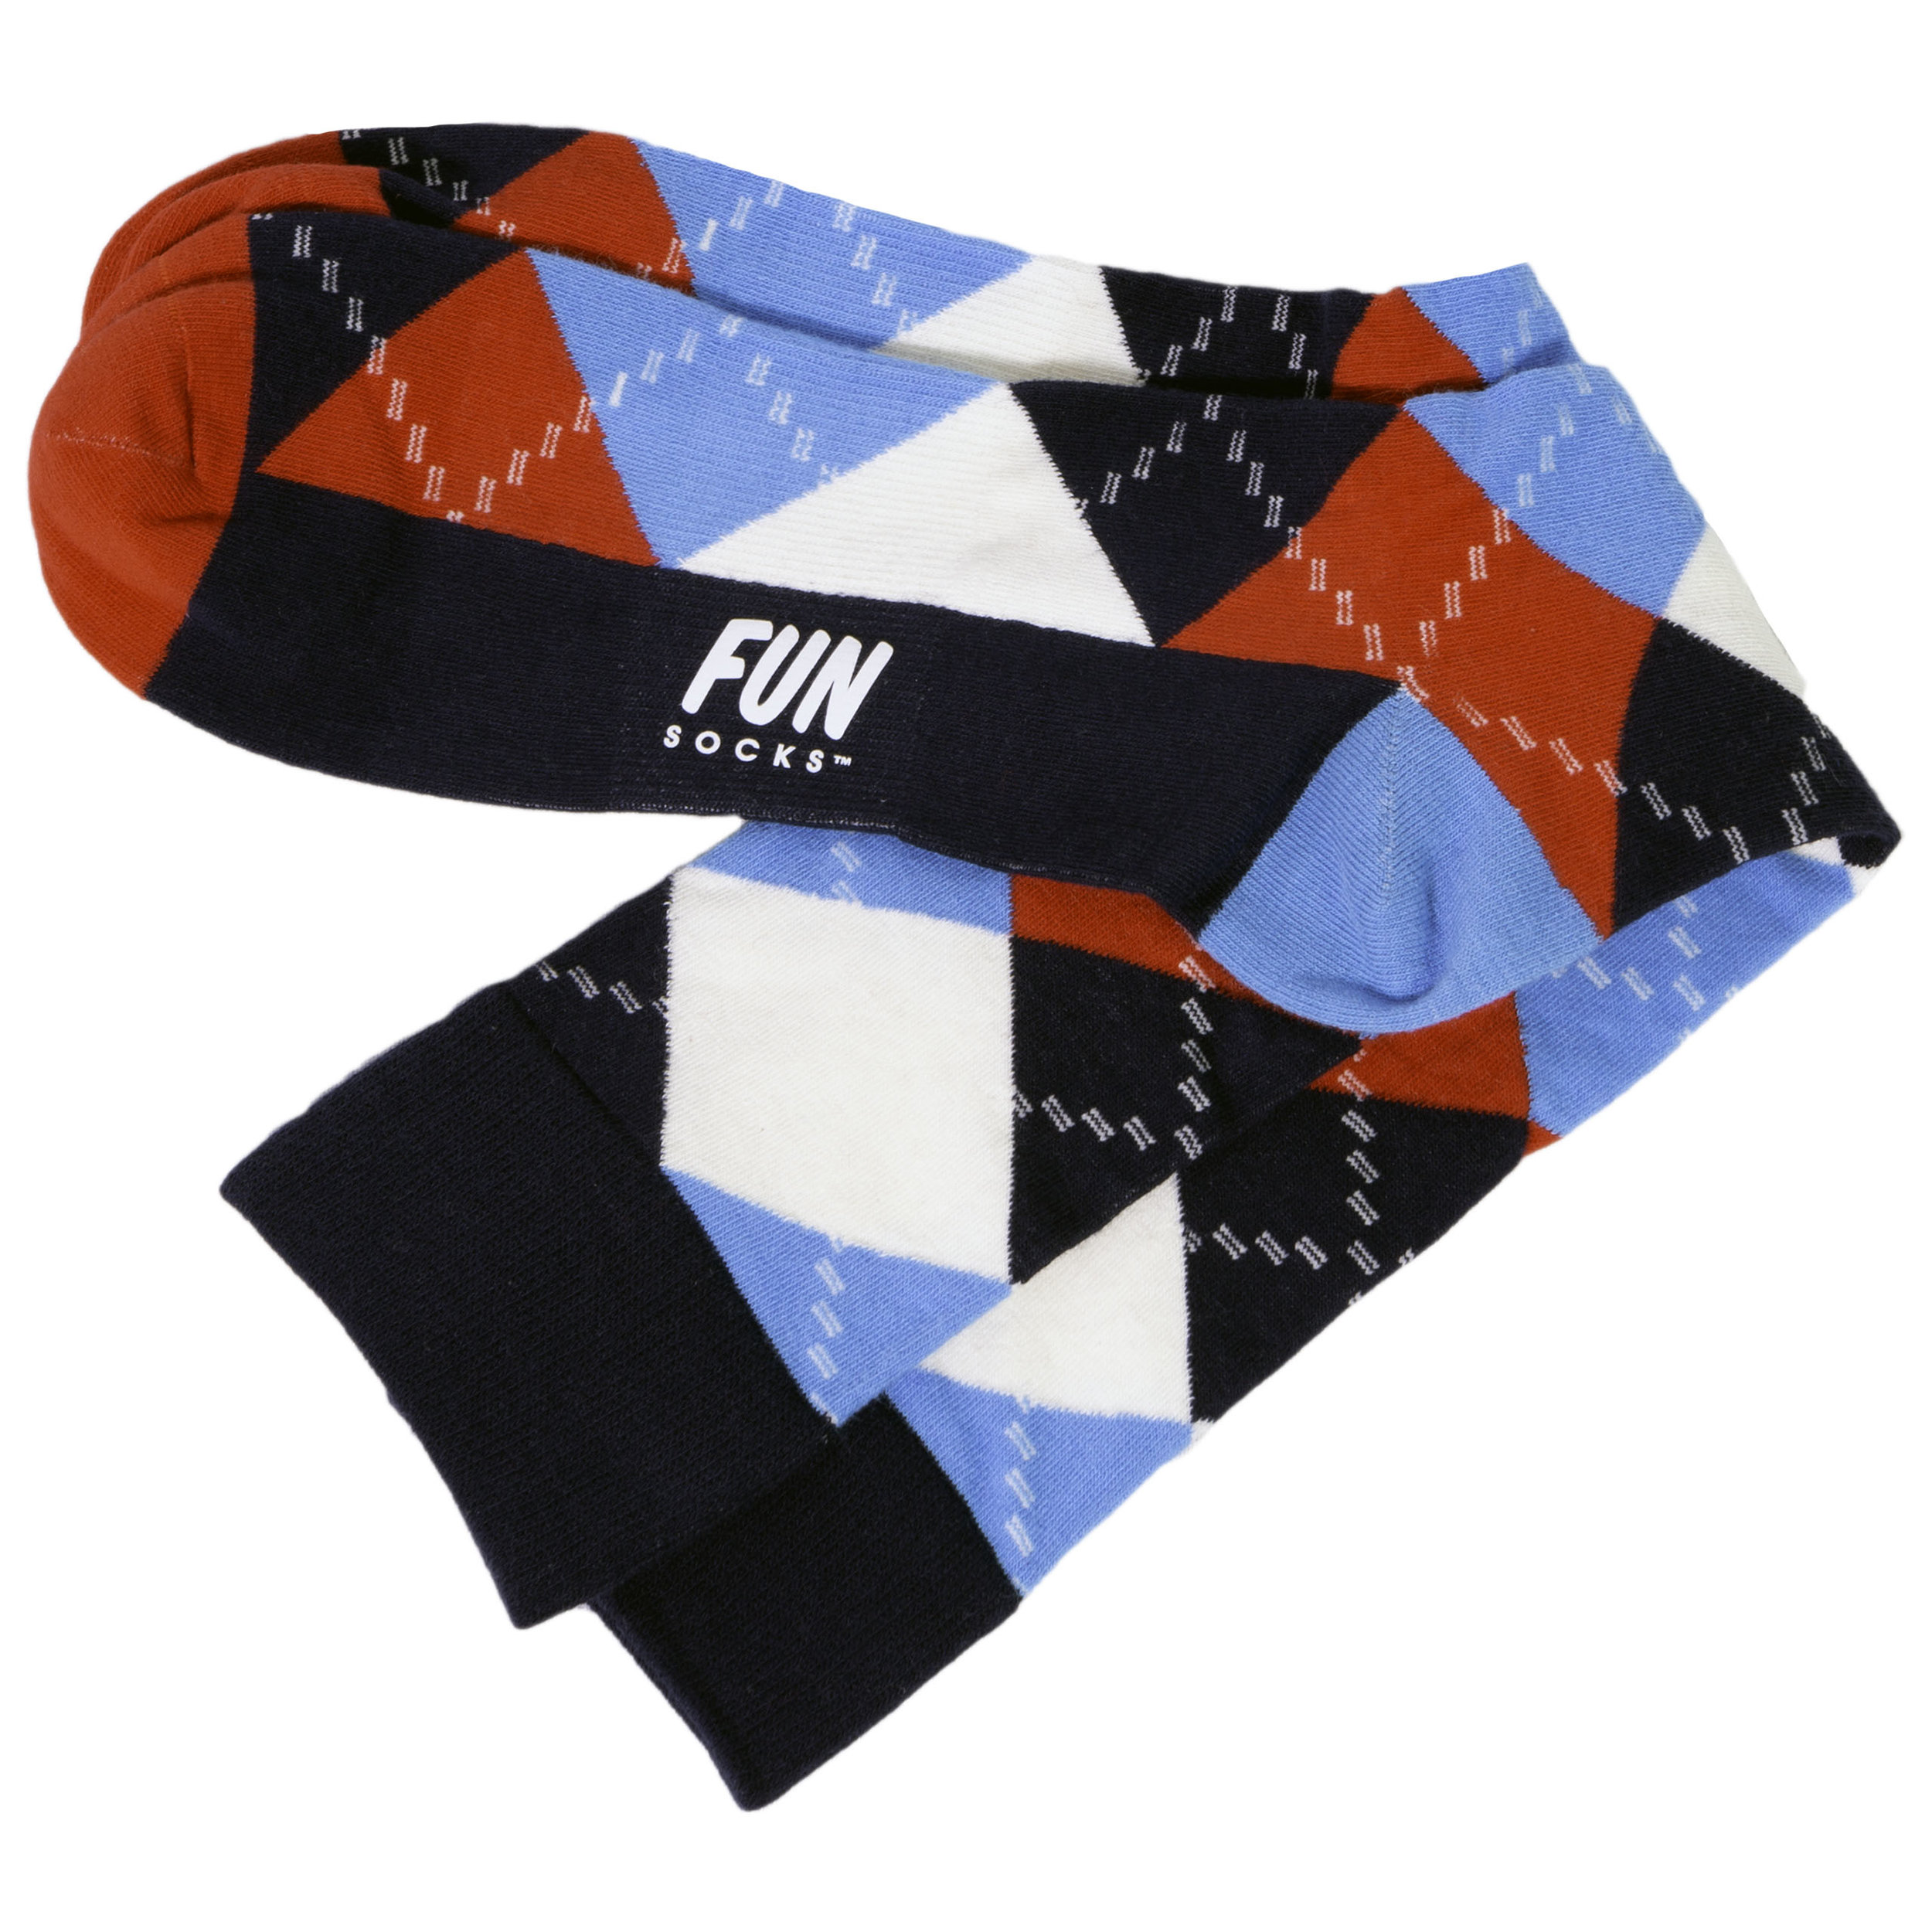 Fun Socks 2 Folded Pair.jpg